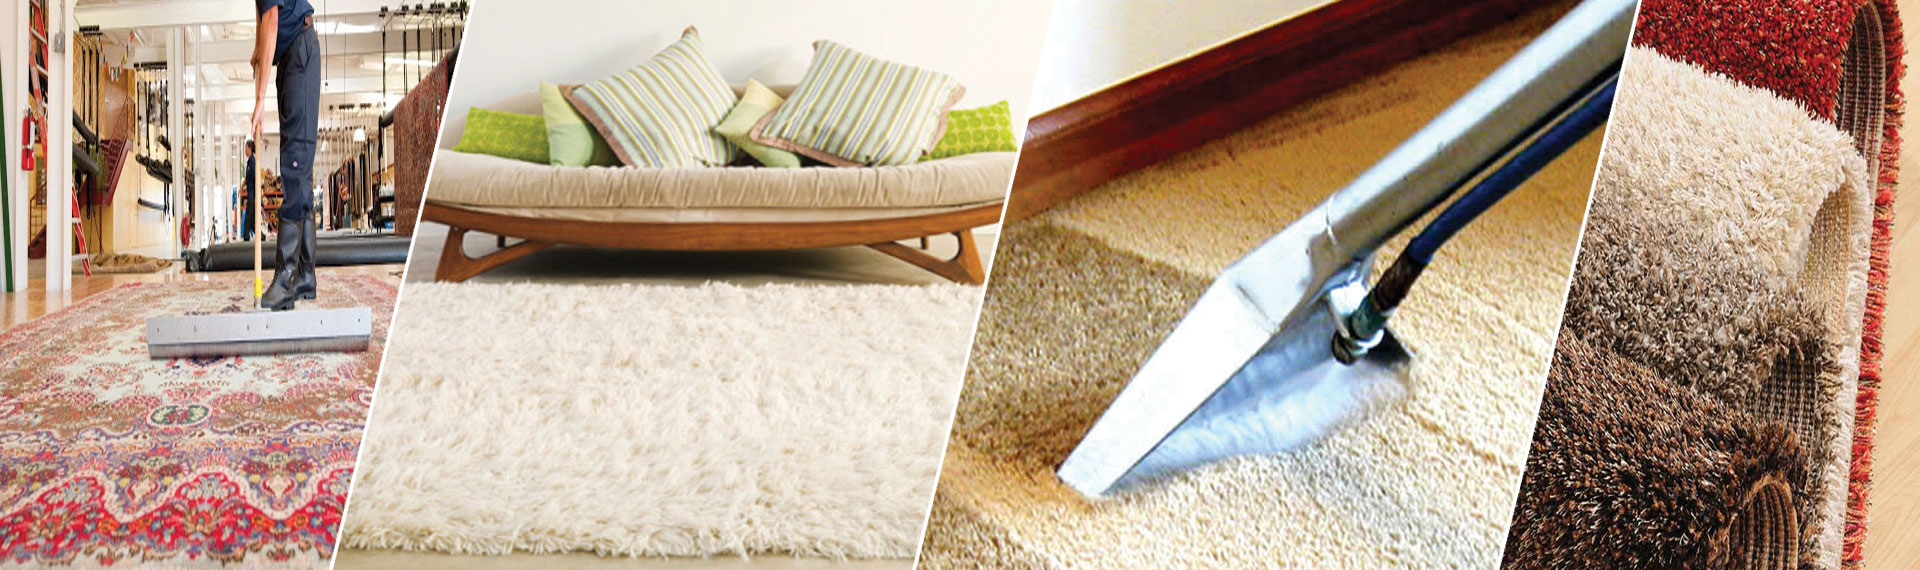 Robert Rug Cleaning Service Radnor PA